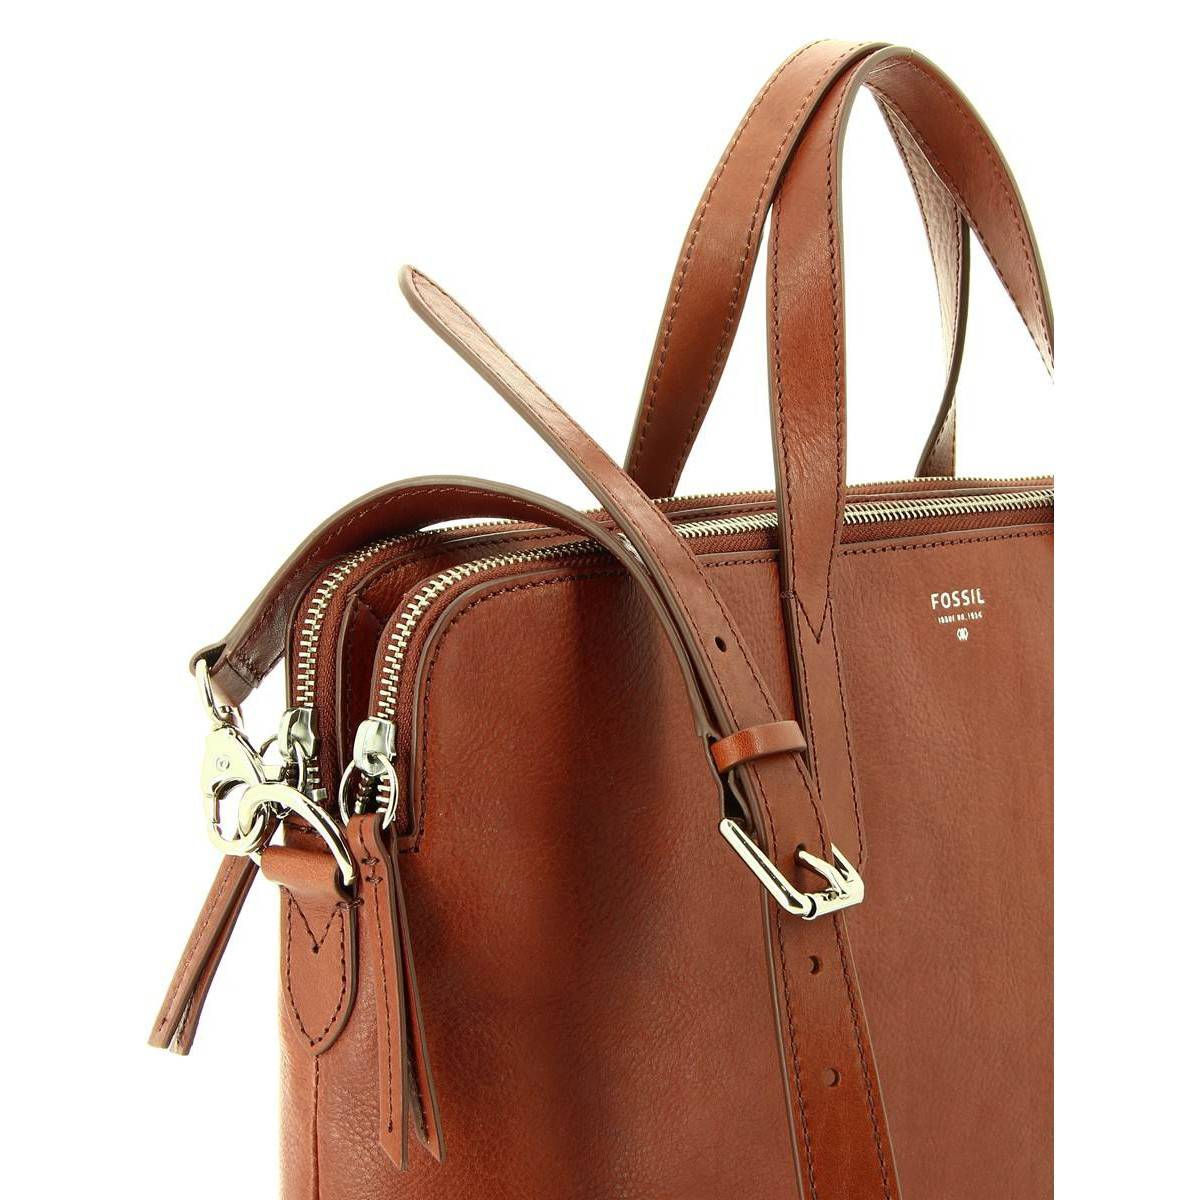 Sac A Main Sydney Fossil Lisa Nelson Blog - Sac porte document femme